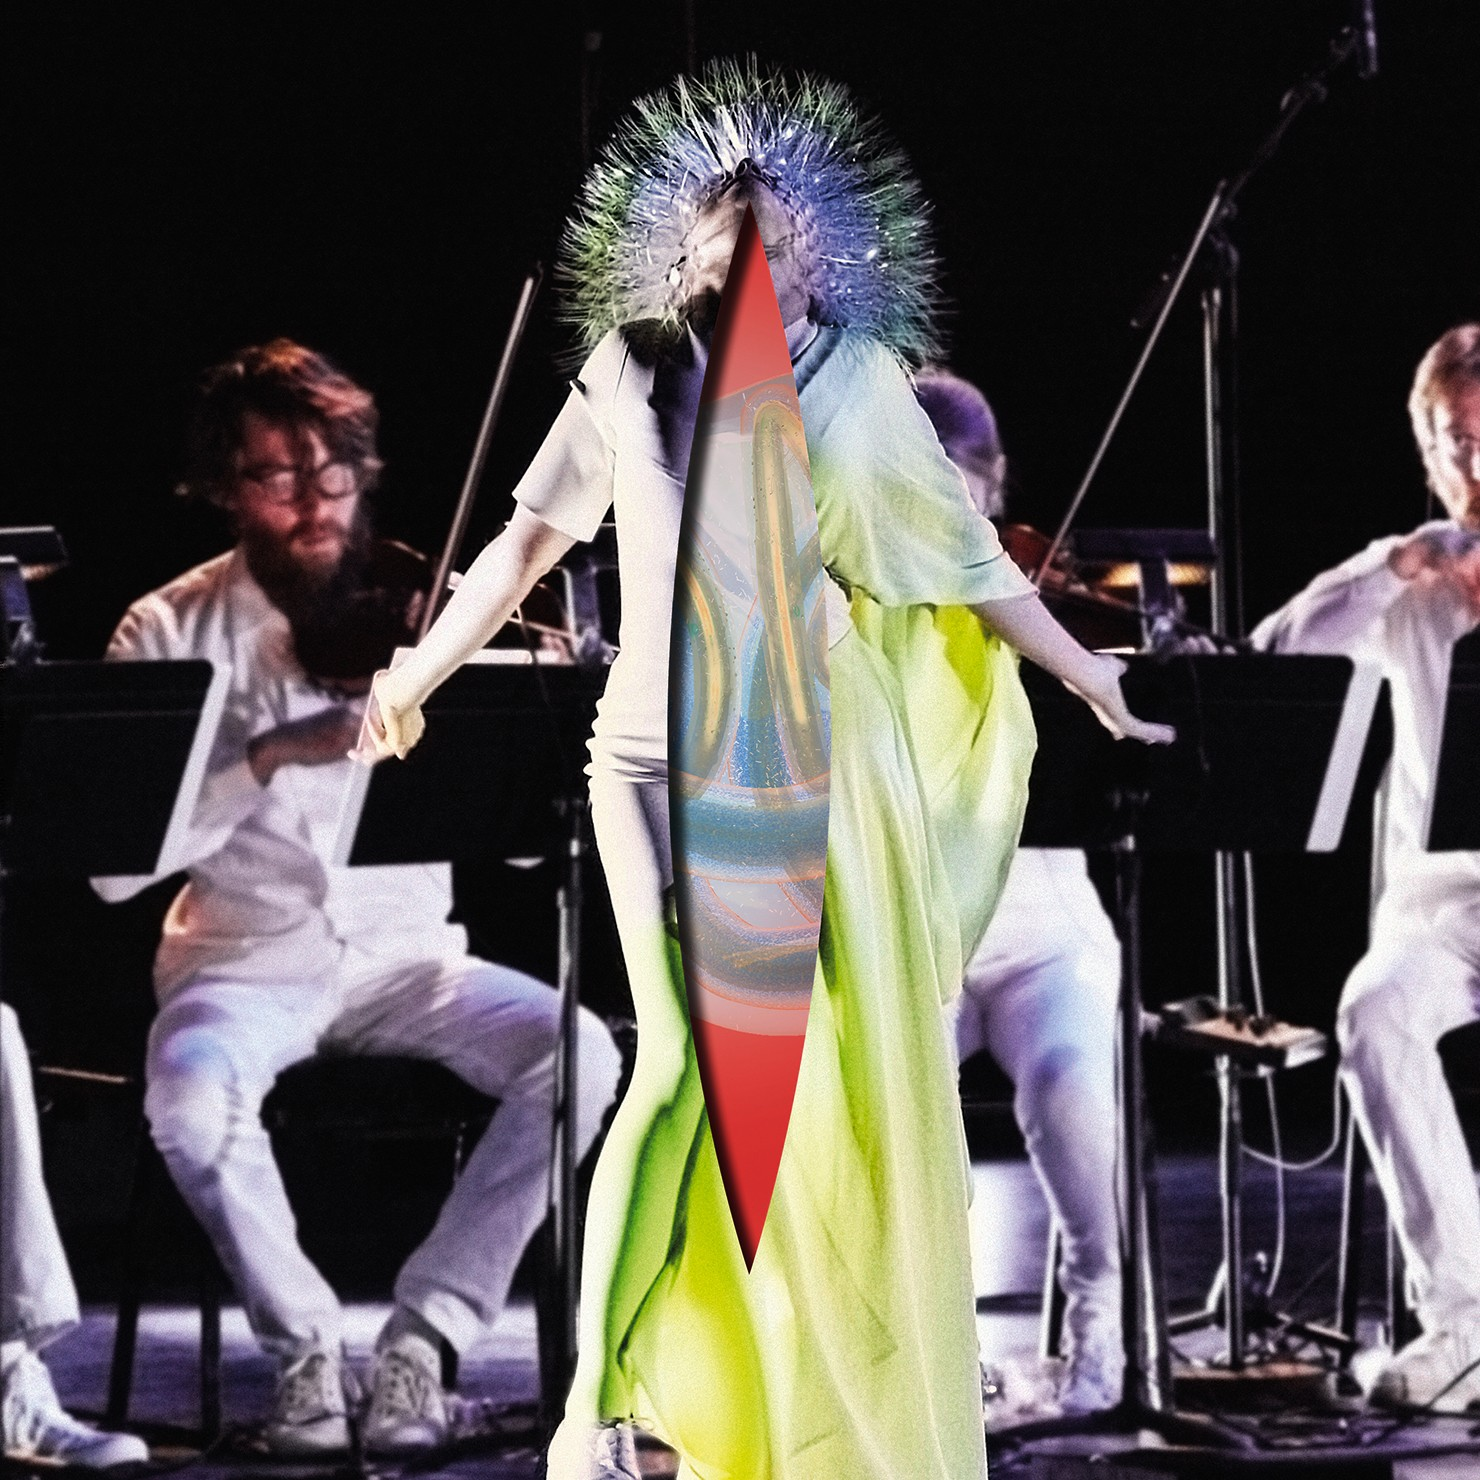 Bj 246 Rk To Release All Strings Version Of Vulnicura Hear